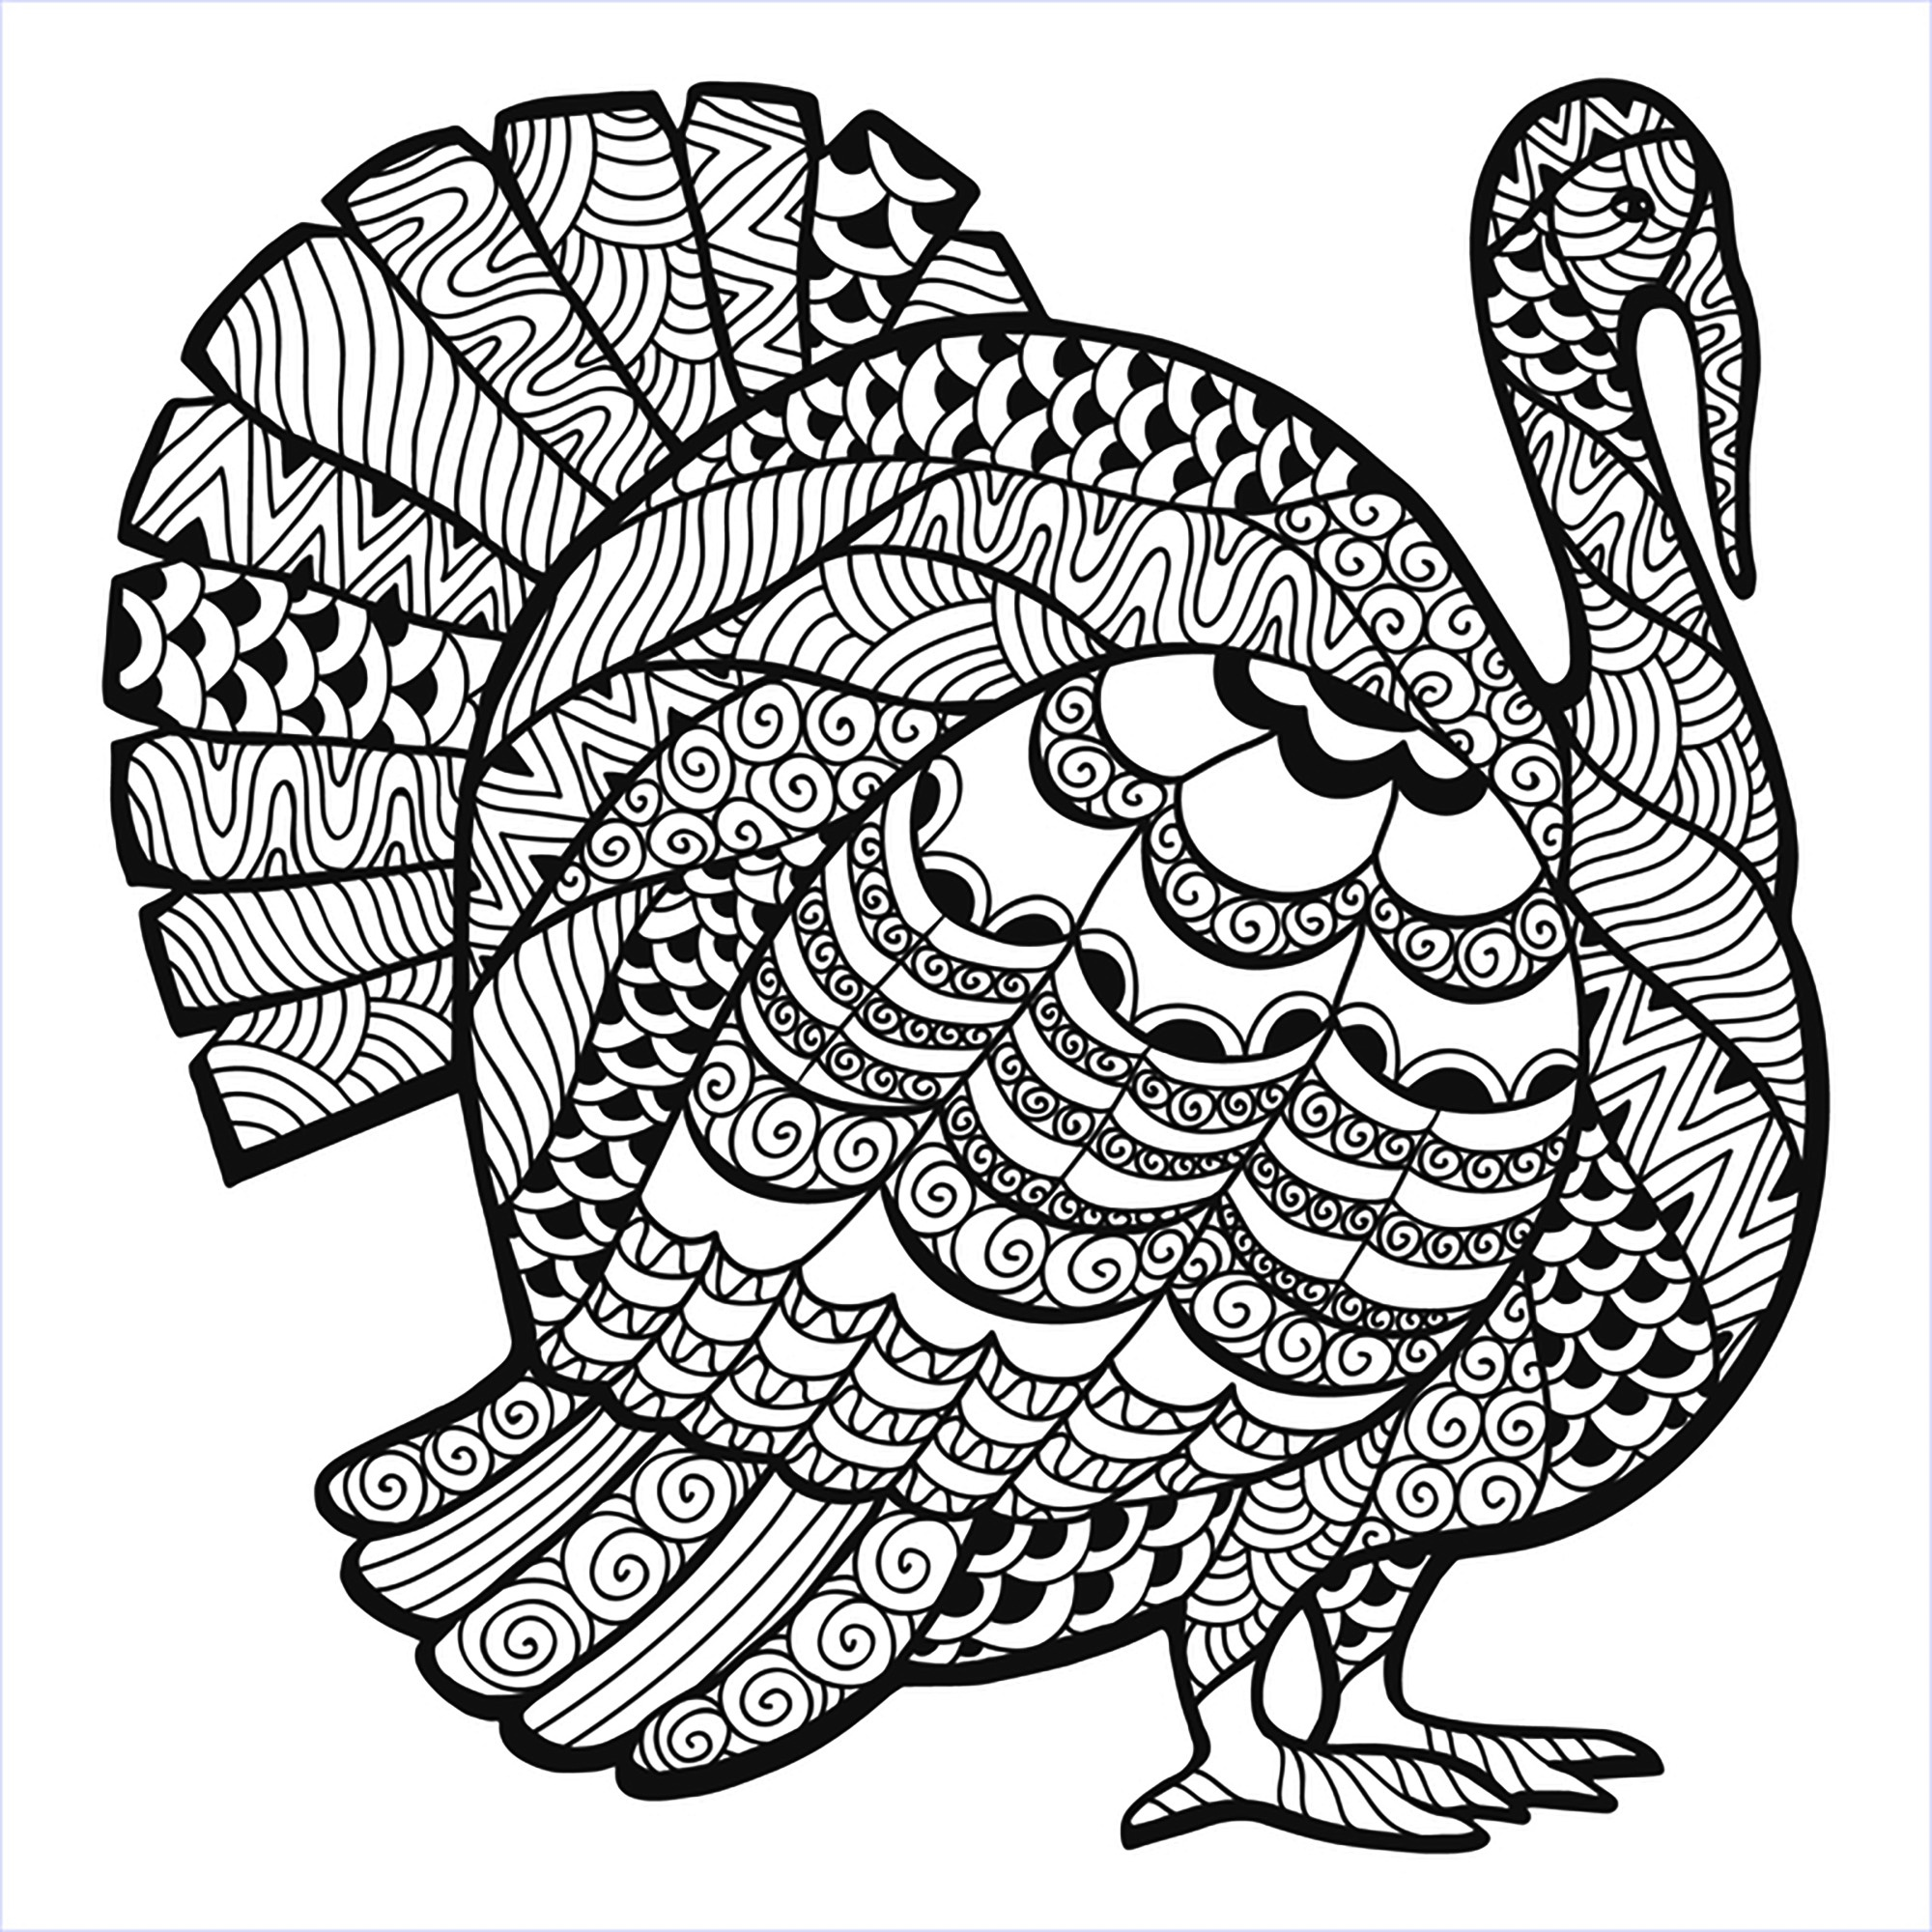 Turkey Zentangle Coloring Sheet - Thanksgiving Adult Coloring Pages - Free Printable Thanksgiving Coloring Pages